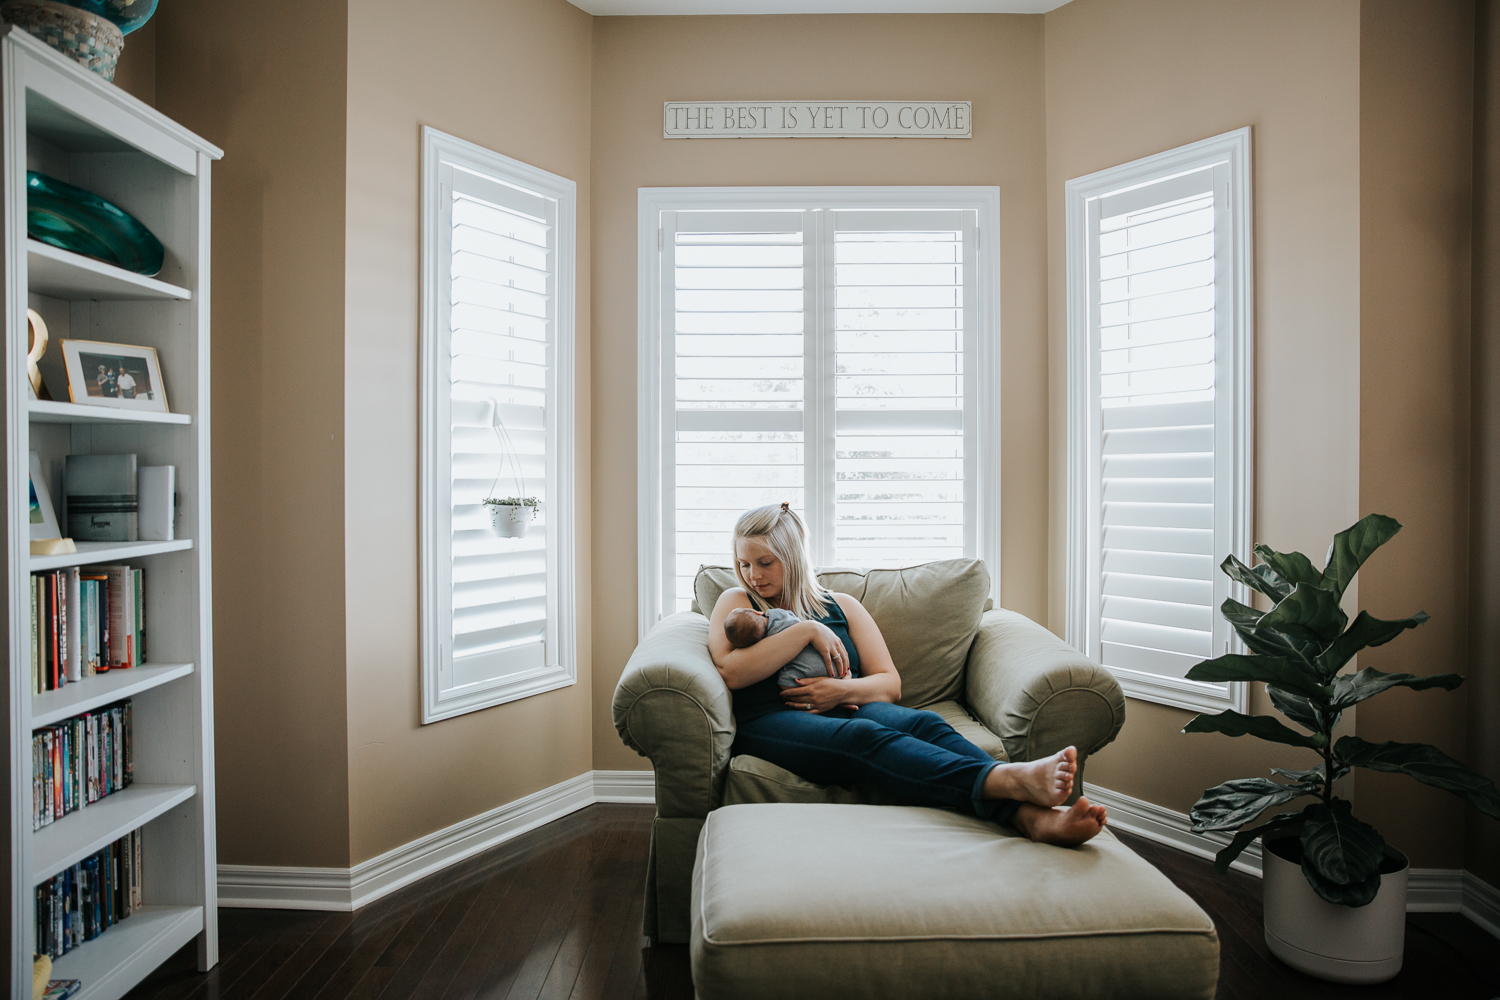 new mom with blonde hair sitting in large chair holding 2 week old baby boy - Markham Lifestyle Photography